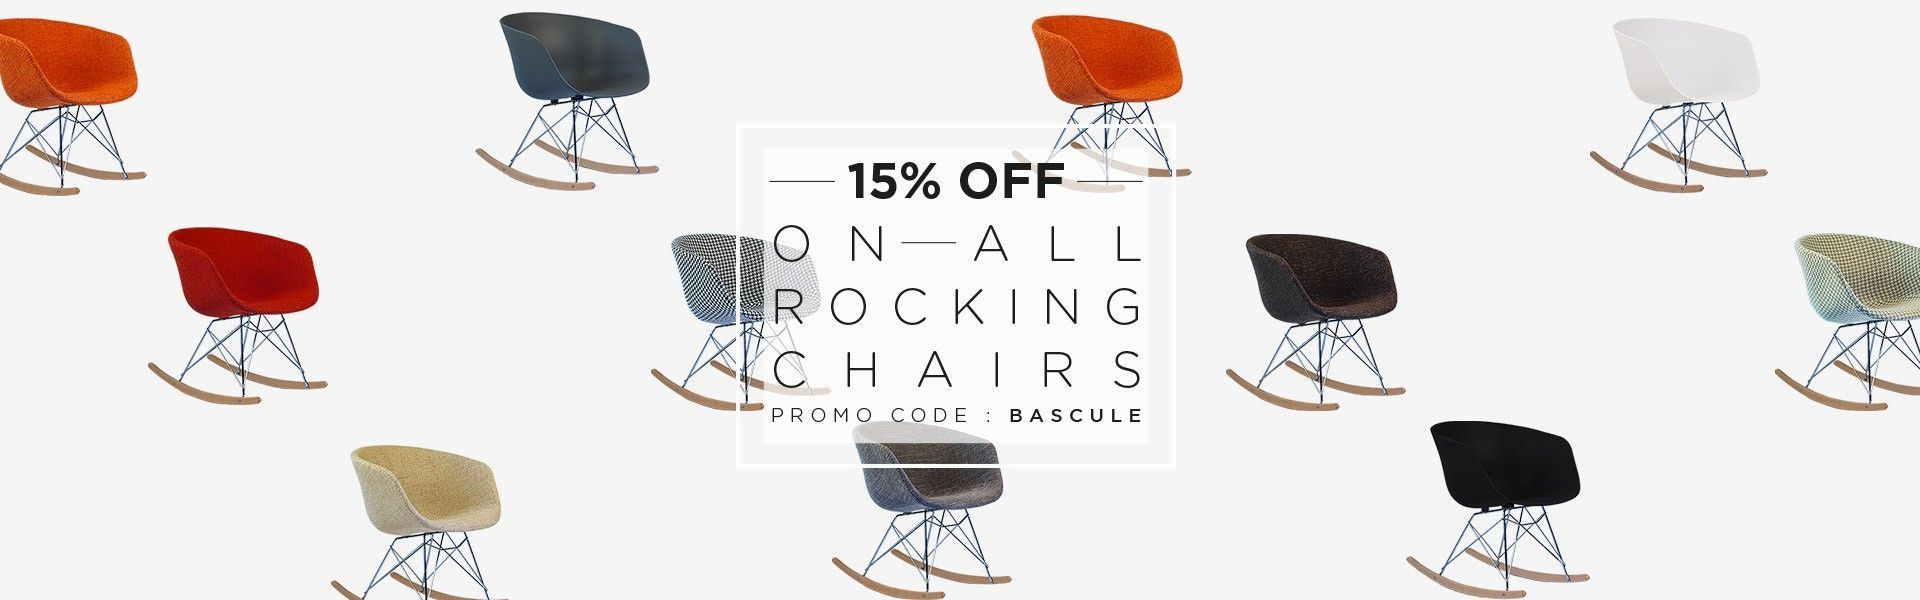 promo on rocking chairs